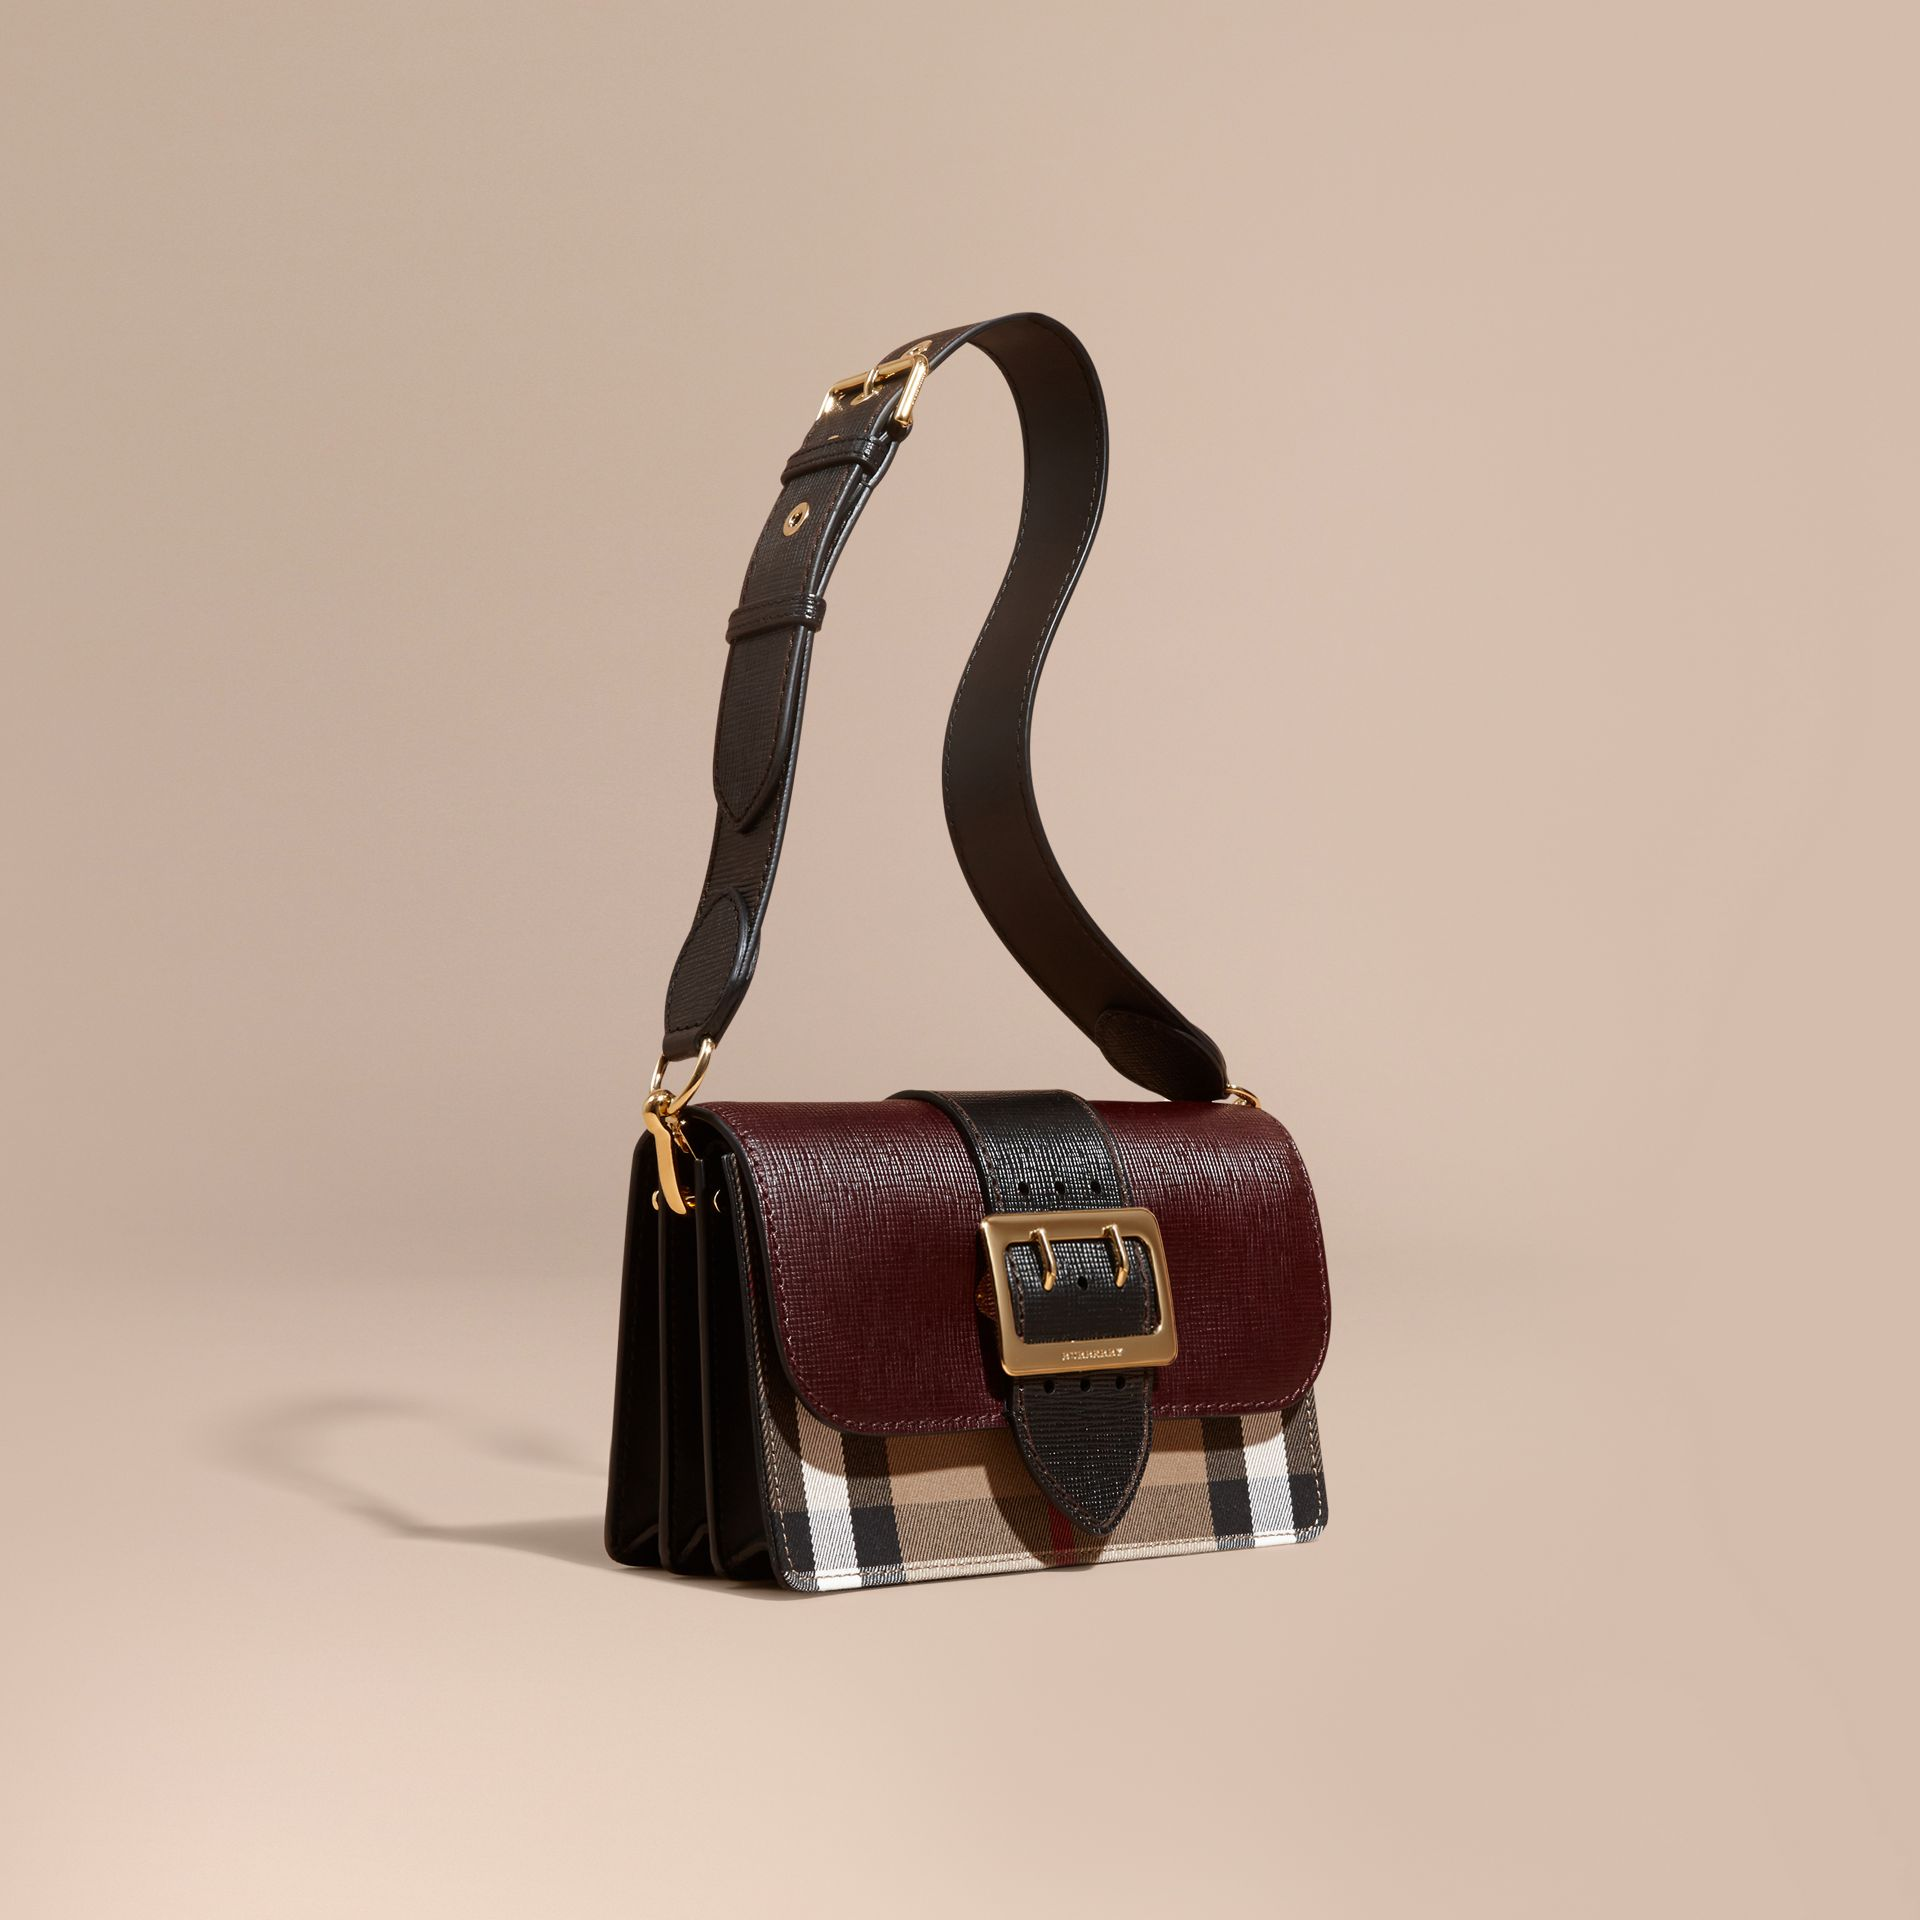 Burgundy/black The Medium Buckle Bag in House Check and Textured Leather Burgundy/black - gallery image 1